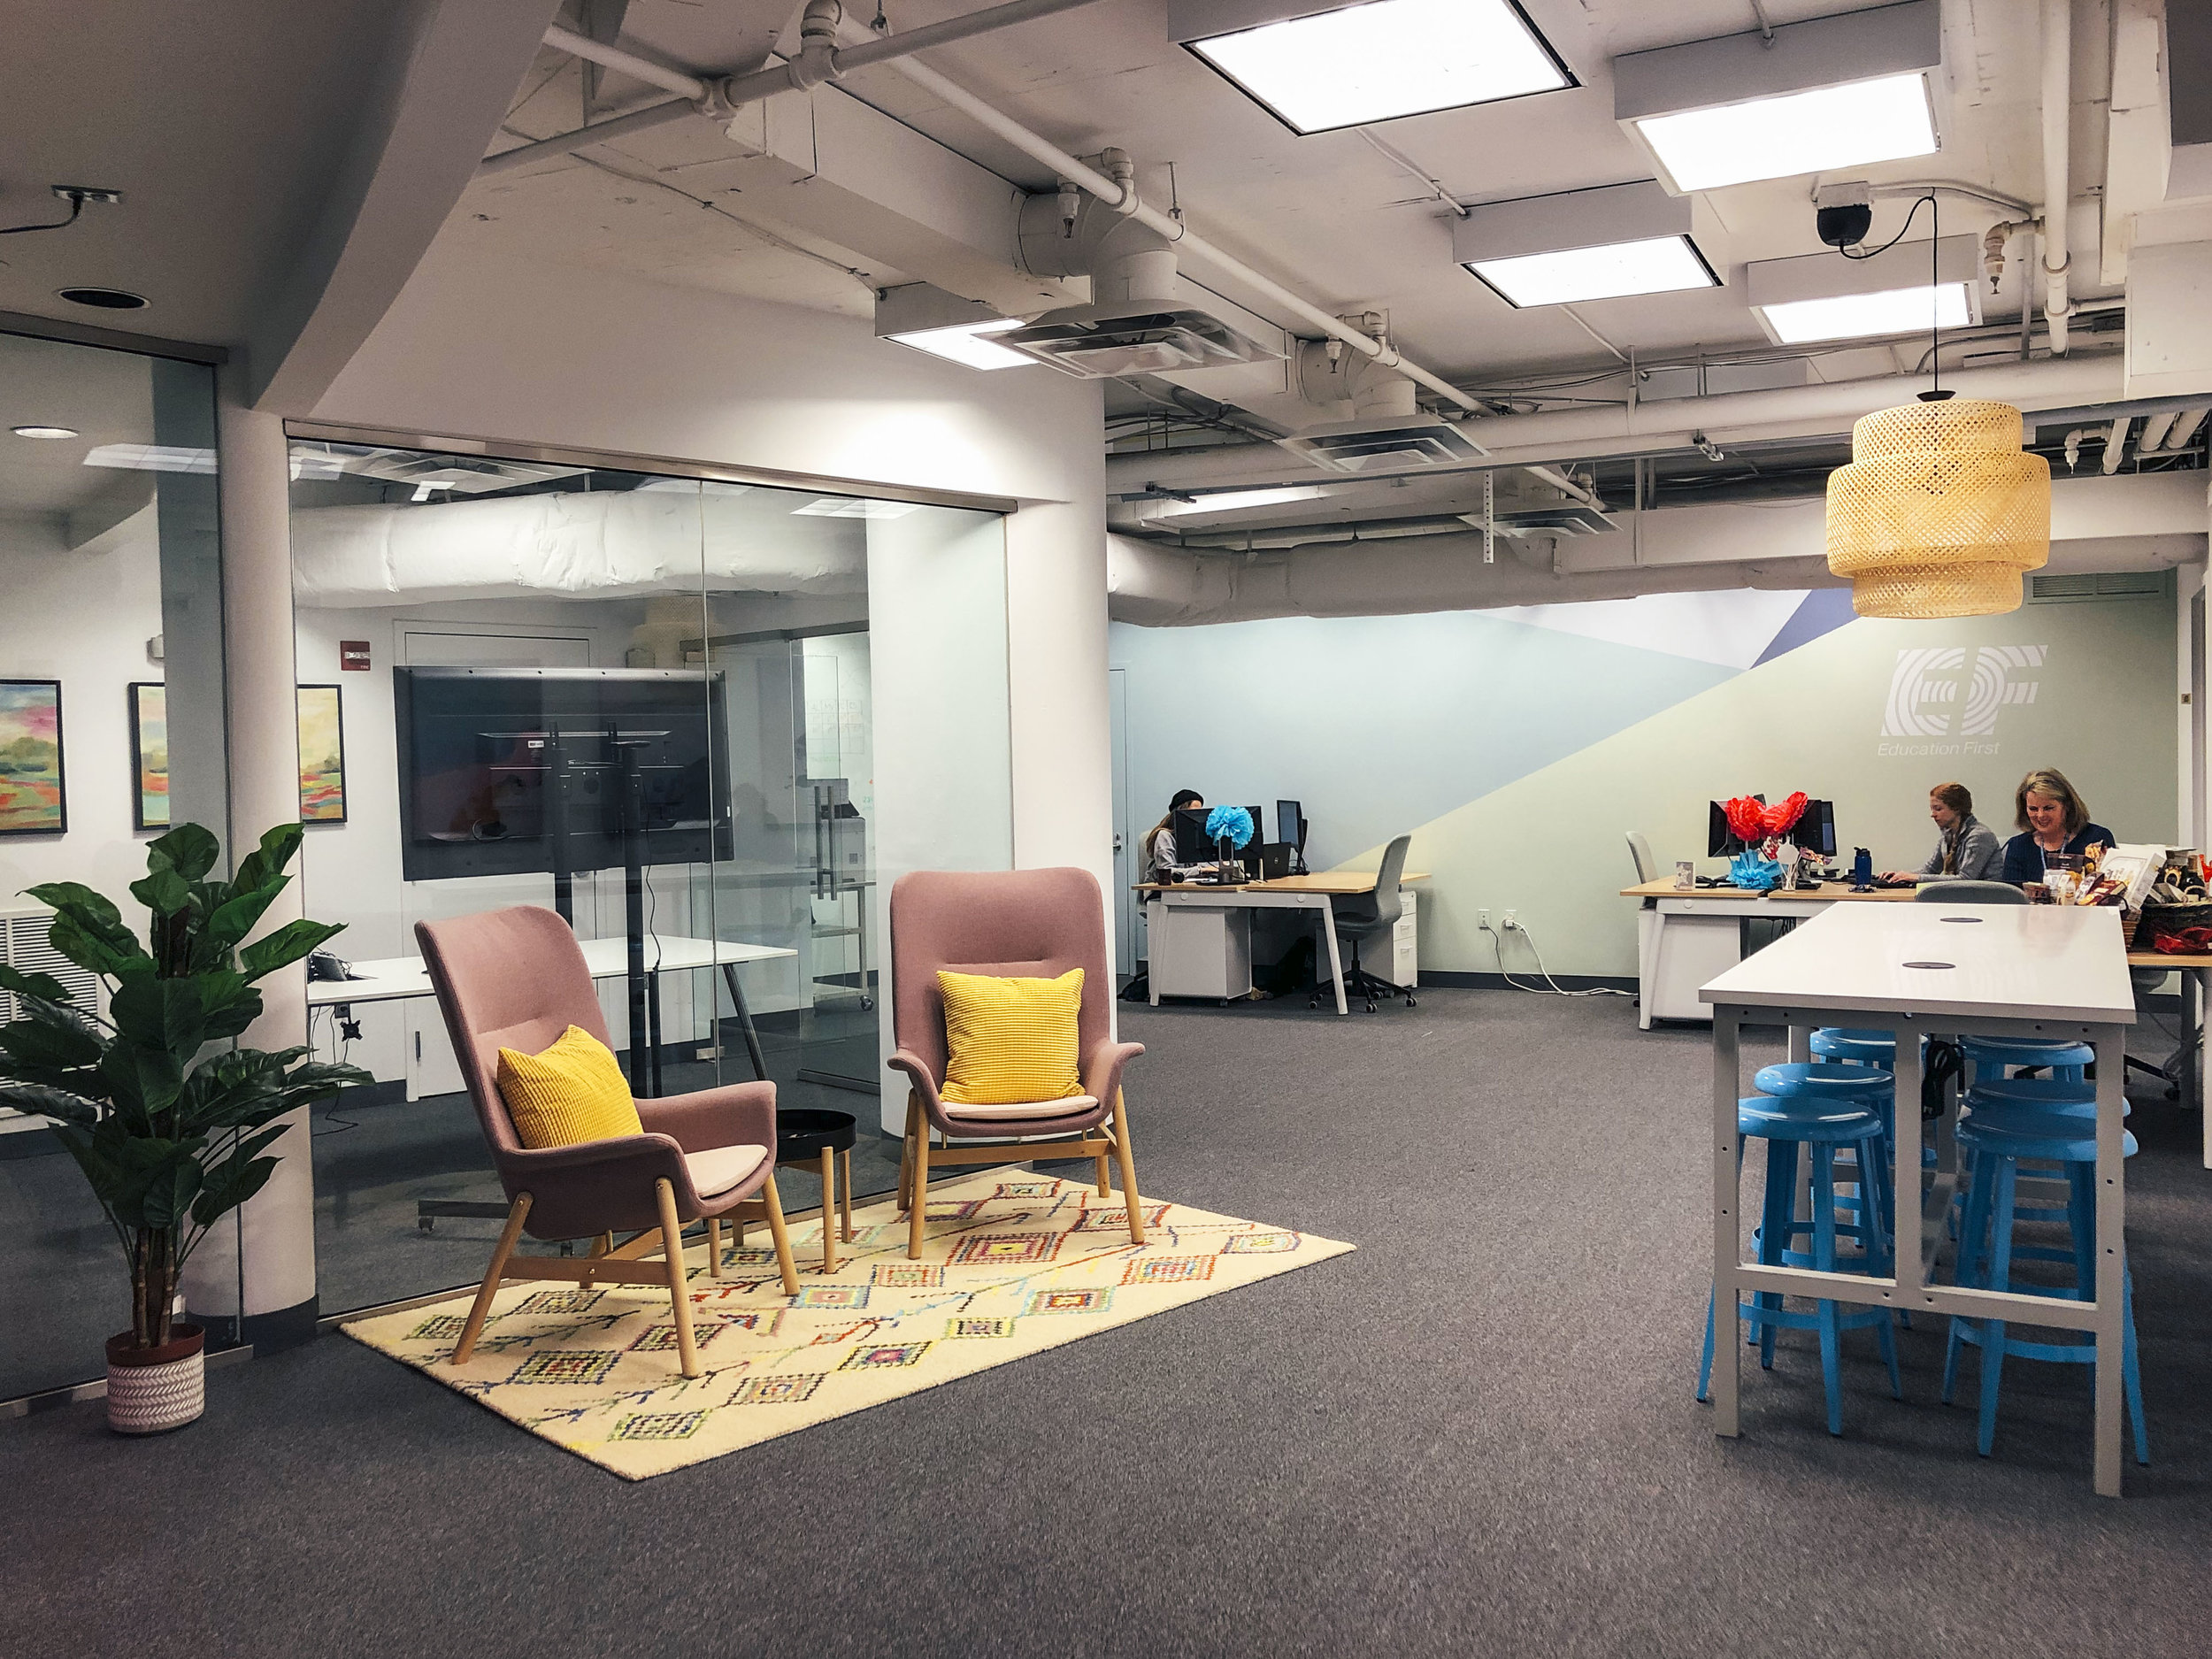 D.C. Office space - As the lead designer for spaces at EF Tours, I got a chance to furnish and design the space of a small remote office in Maryland.